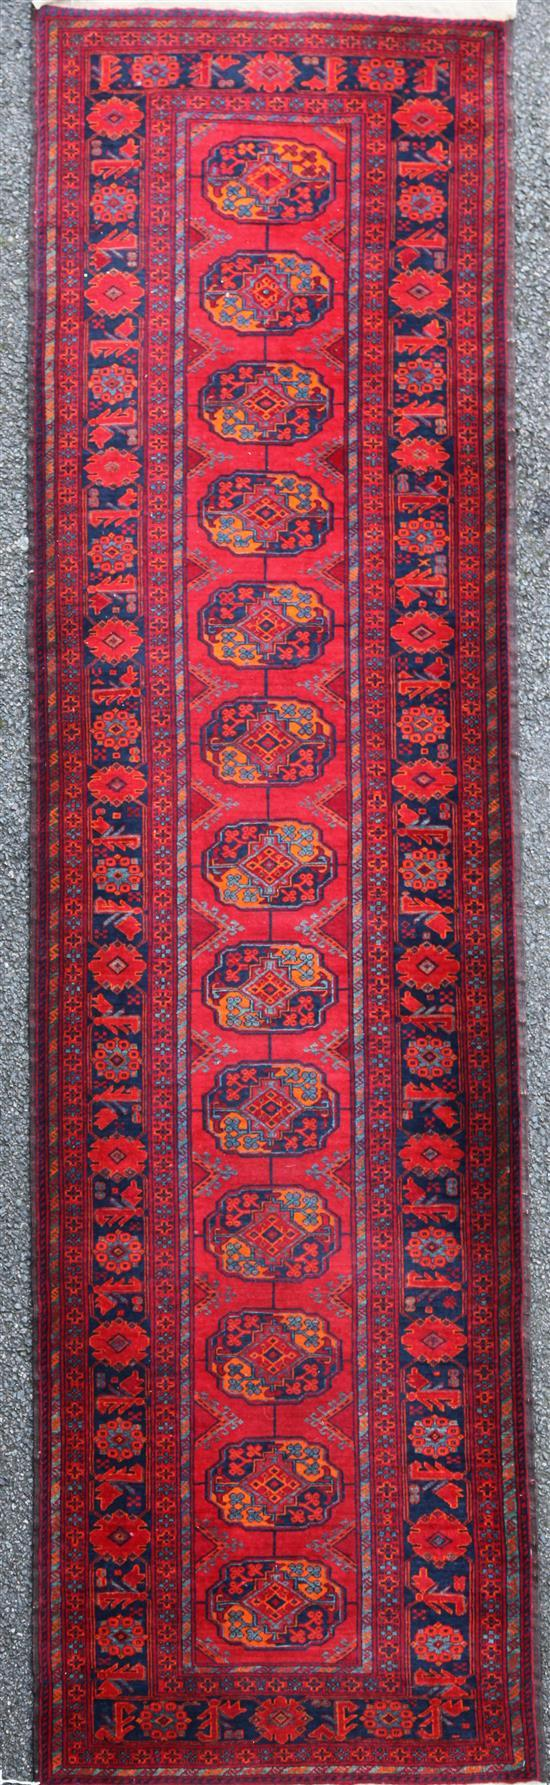 A Bokhara style runner, 9ft 6in by 2ft 9in.